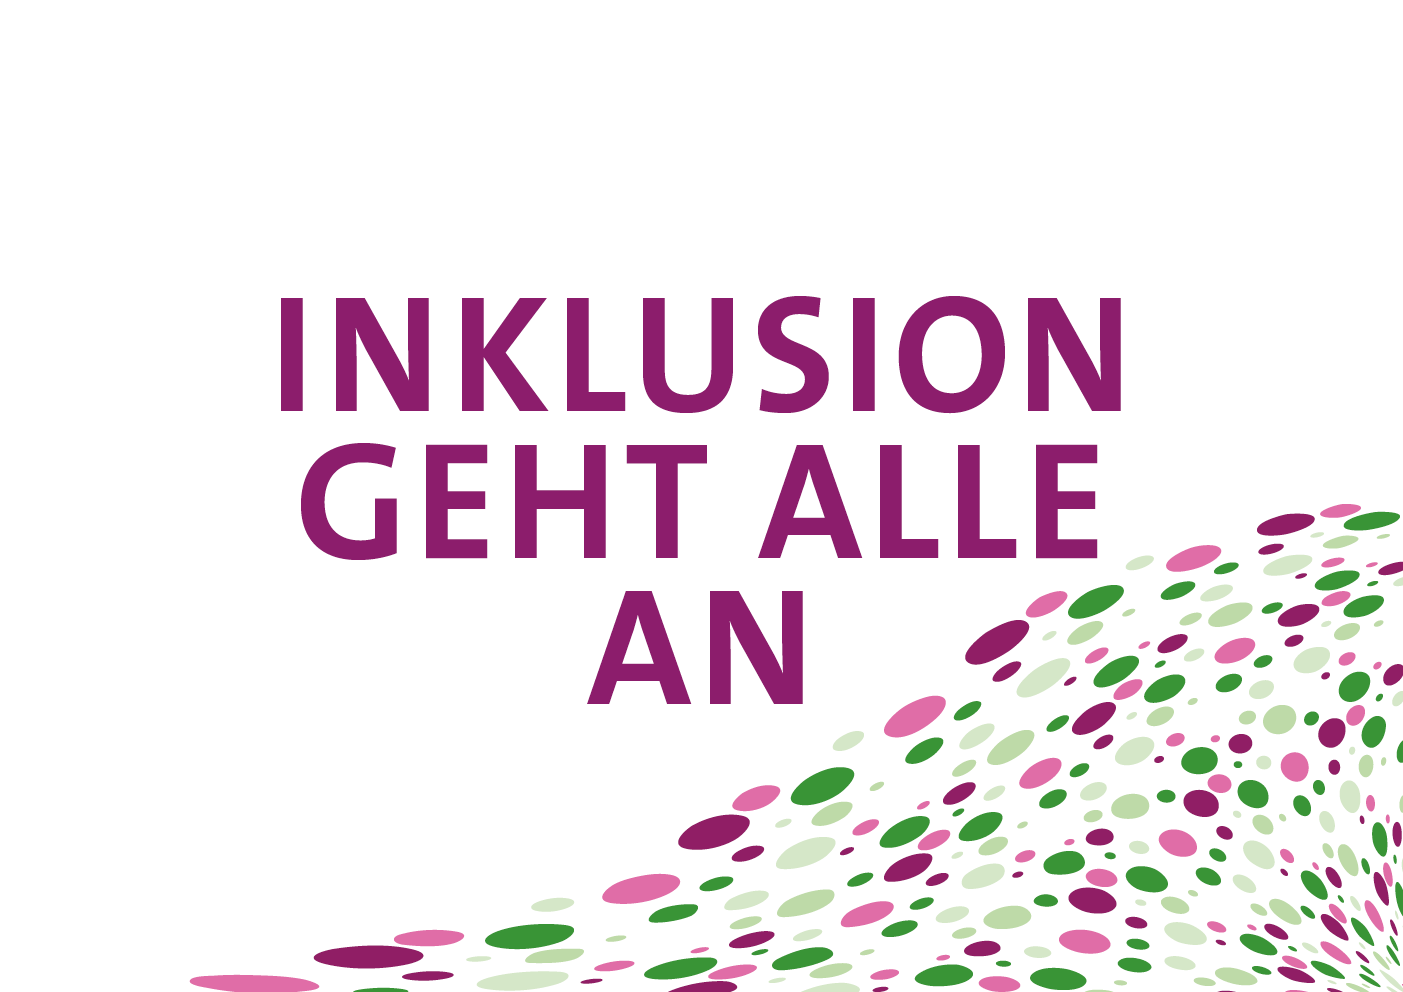 Inklusion geht alle an